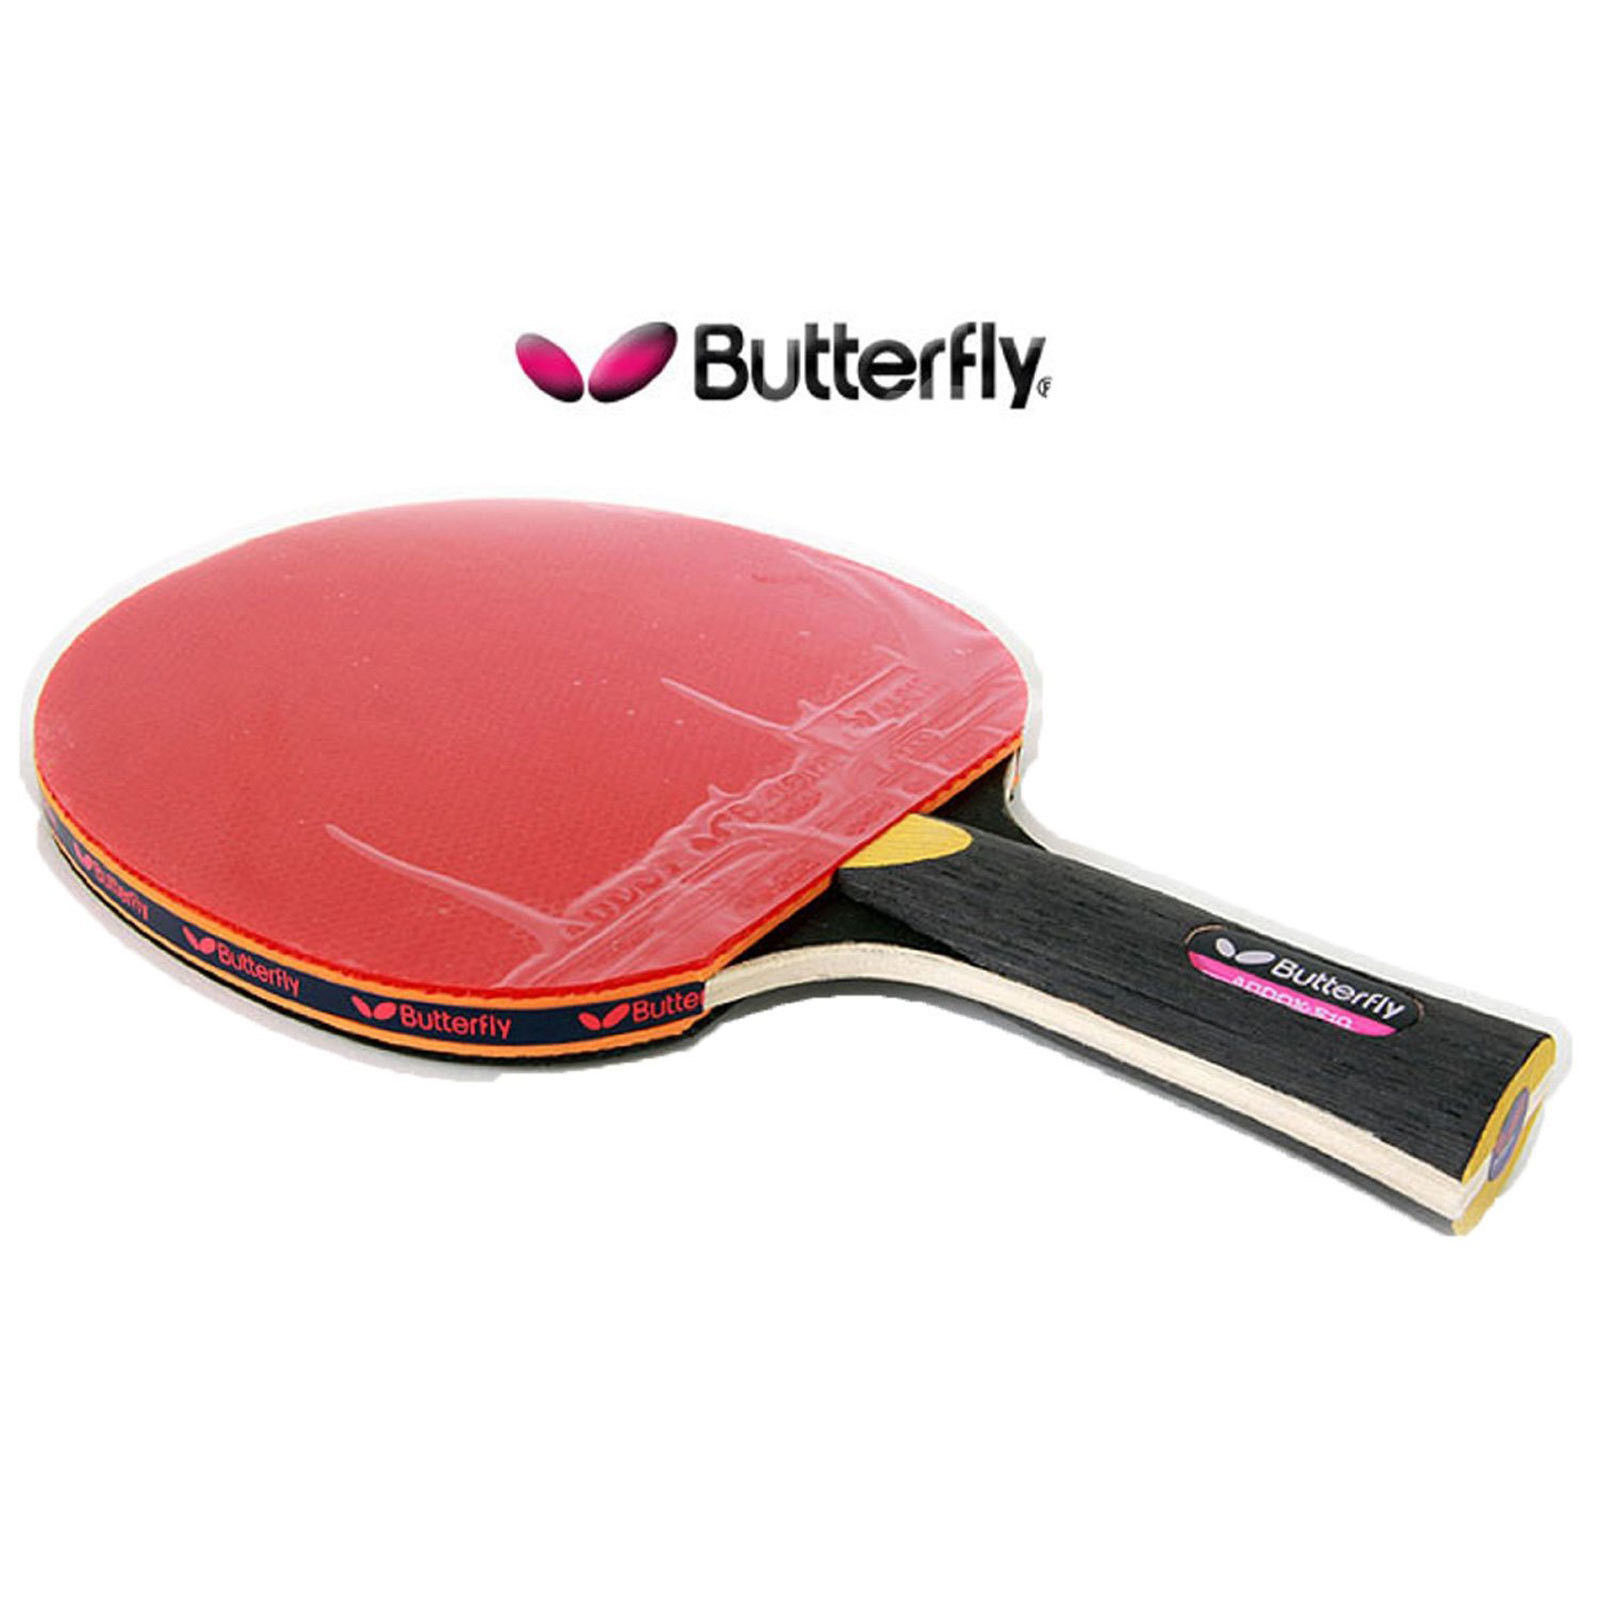 Butterfly addoy s10 table tennis racket paddle shake hand grip ping pong ebay - Butterfly tennis de table ...